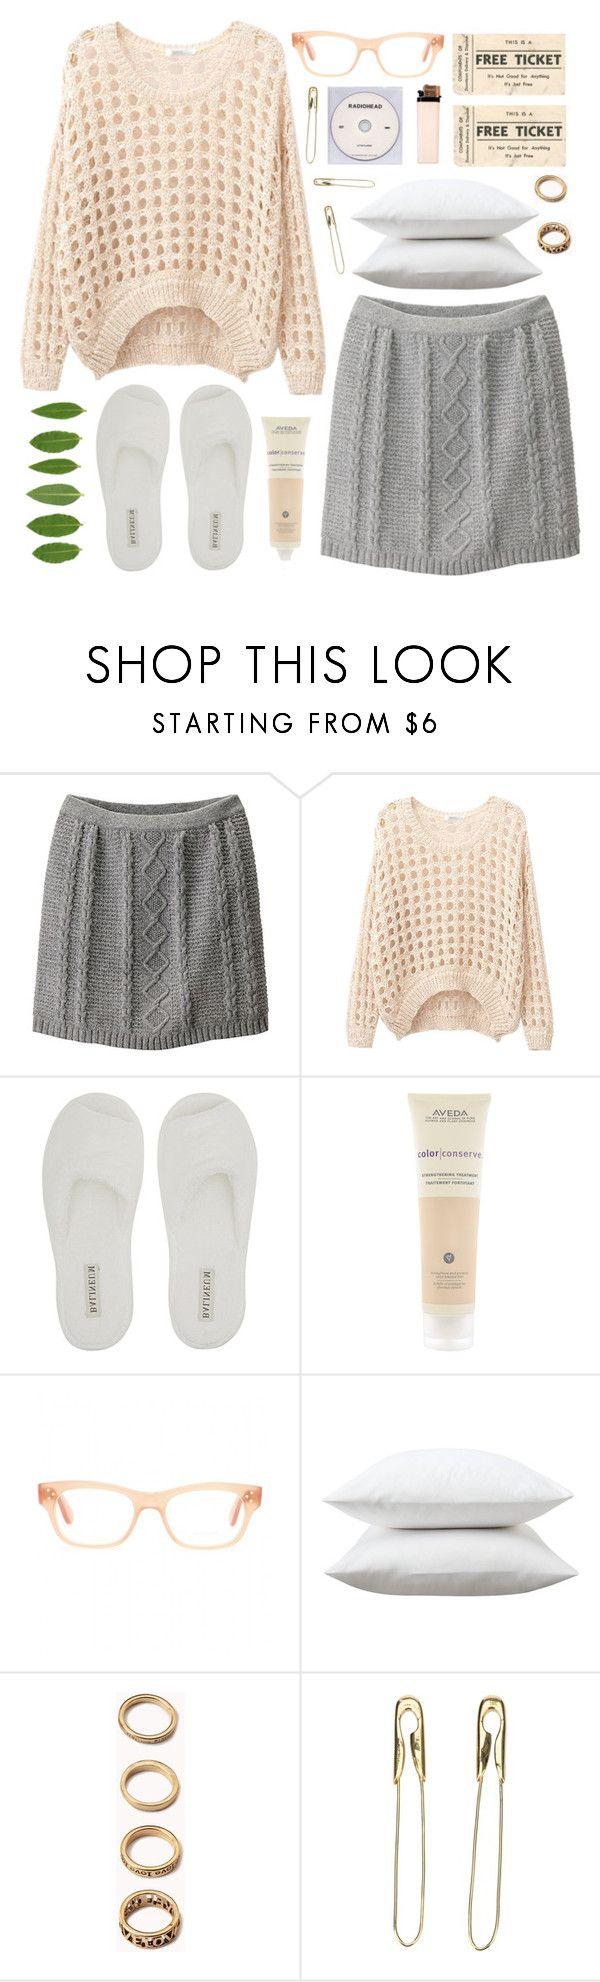 """""""Untitled #350"""" by chantellehofland ❤ liked on Polyvore featuring Uniqlo, Aveda, Oliver Peoples, Fieldcrest, Forever 21, KEEP ME and Tom Binns"""